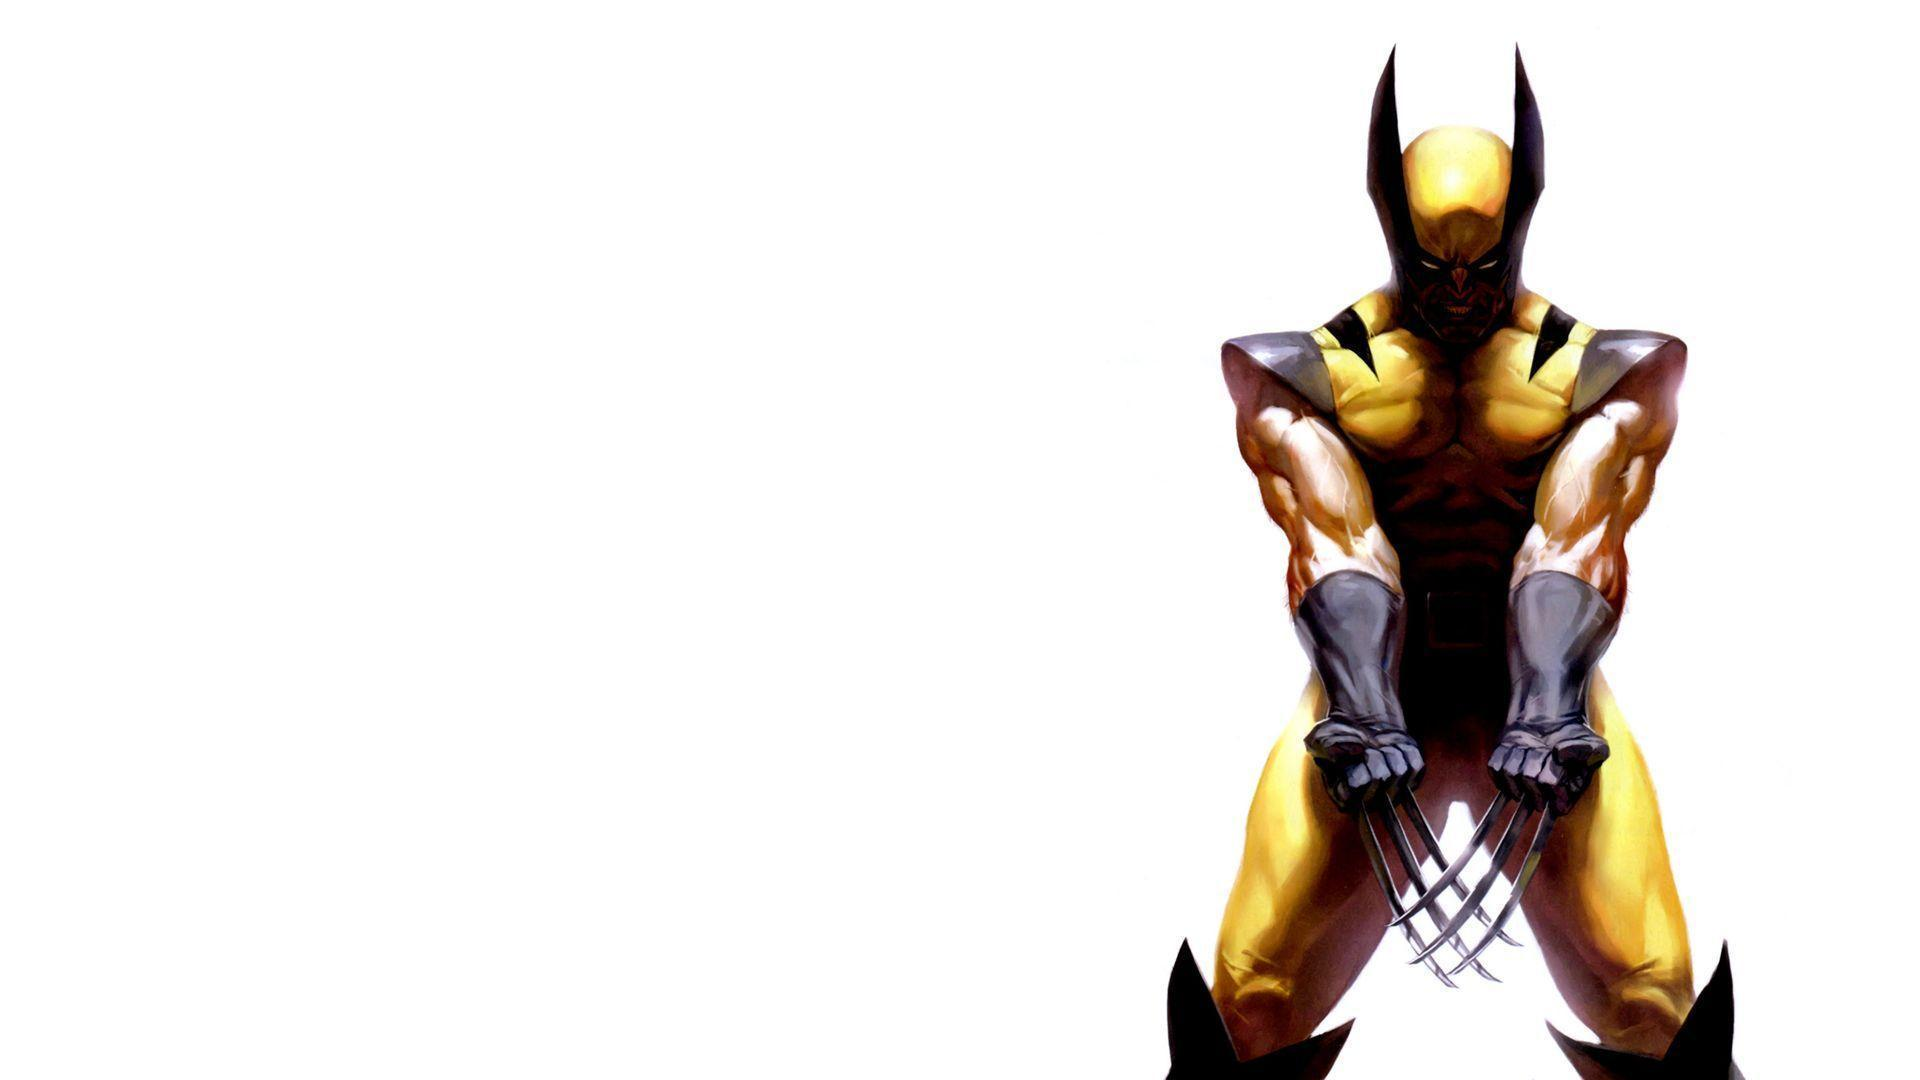 Must see Wallpaper Marvel Wolverine - bLkAUWo  Graphic_491371.jpg